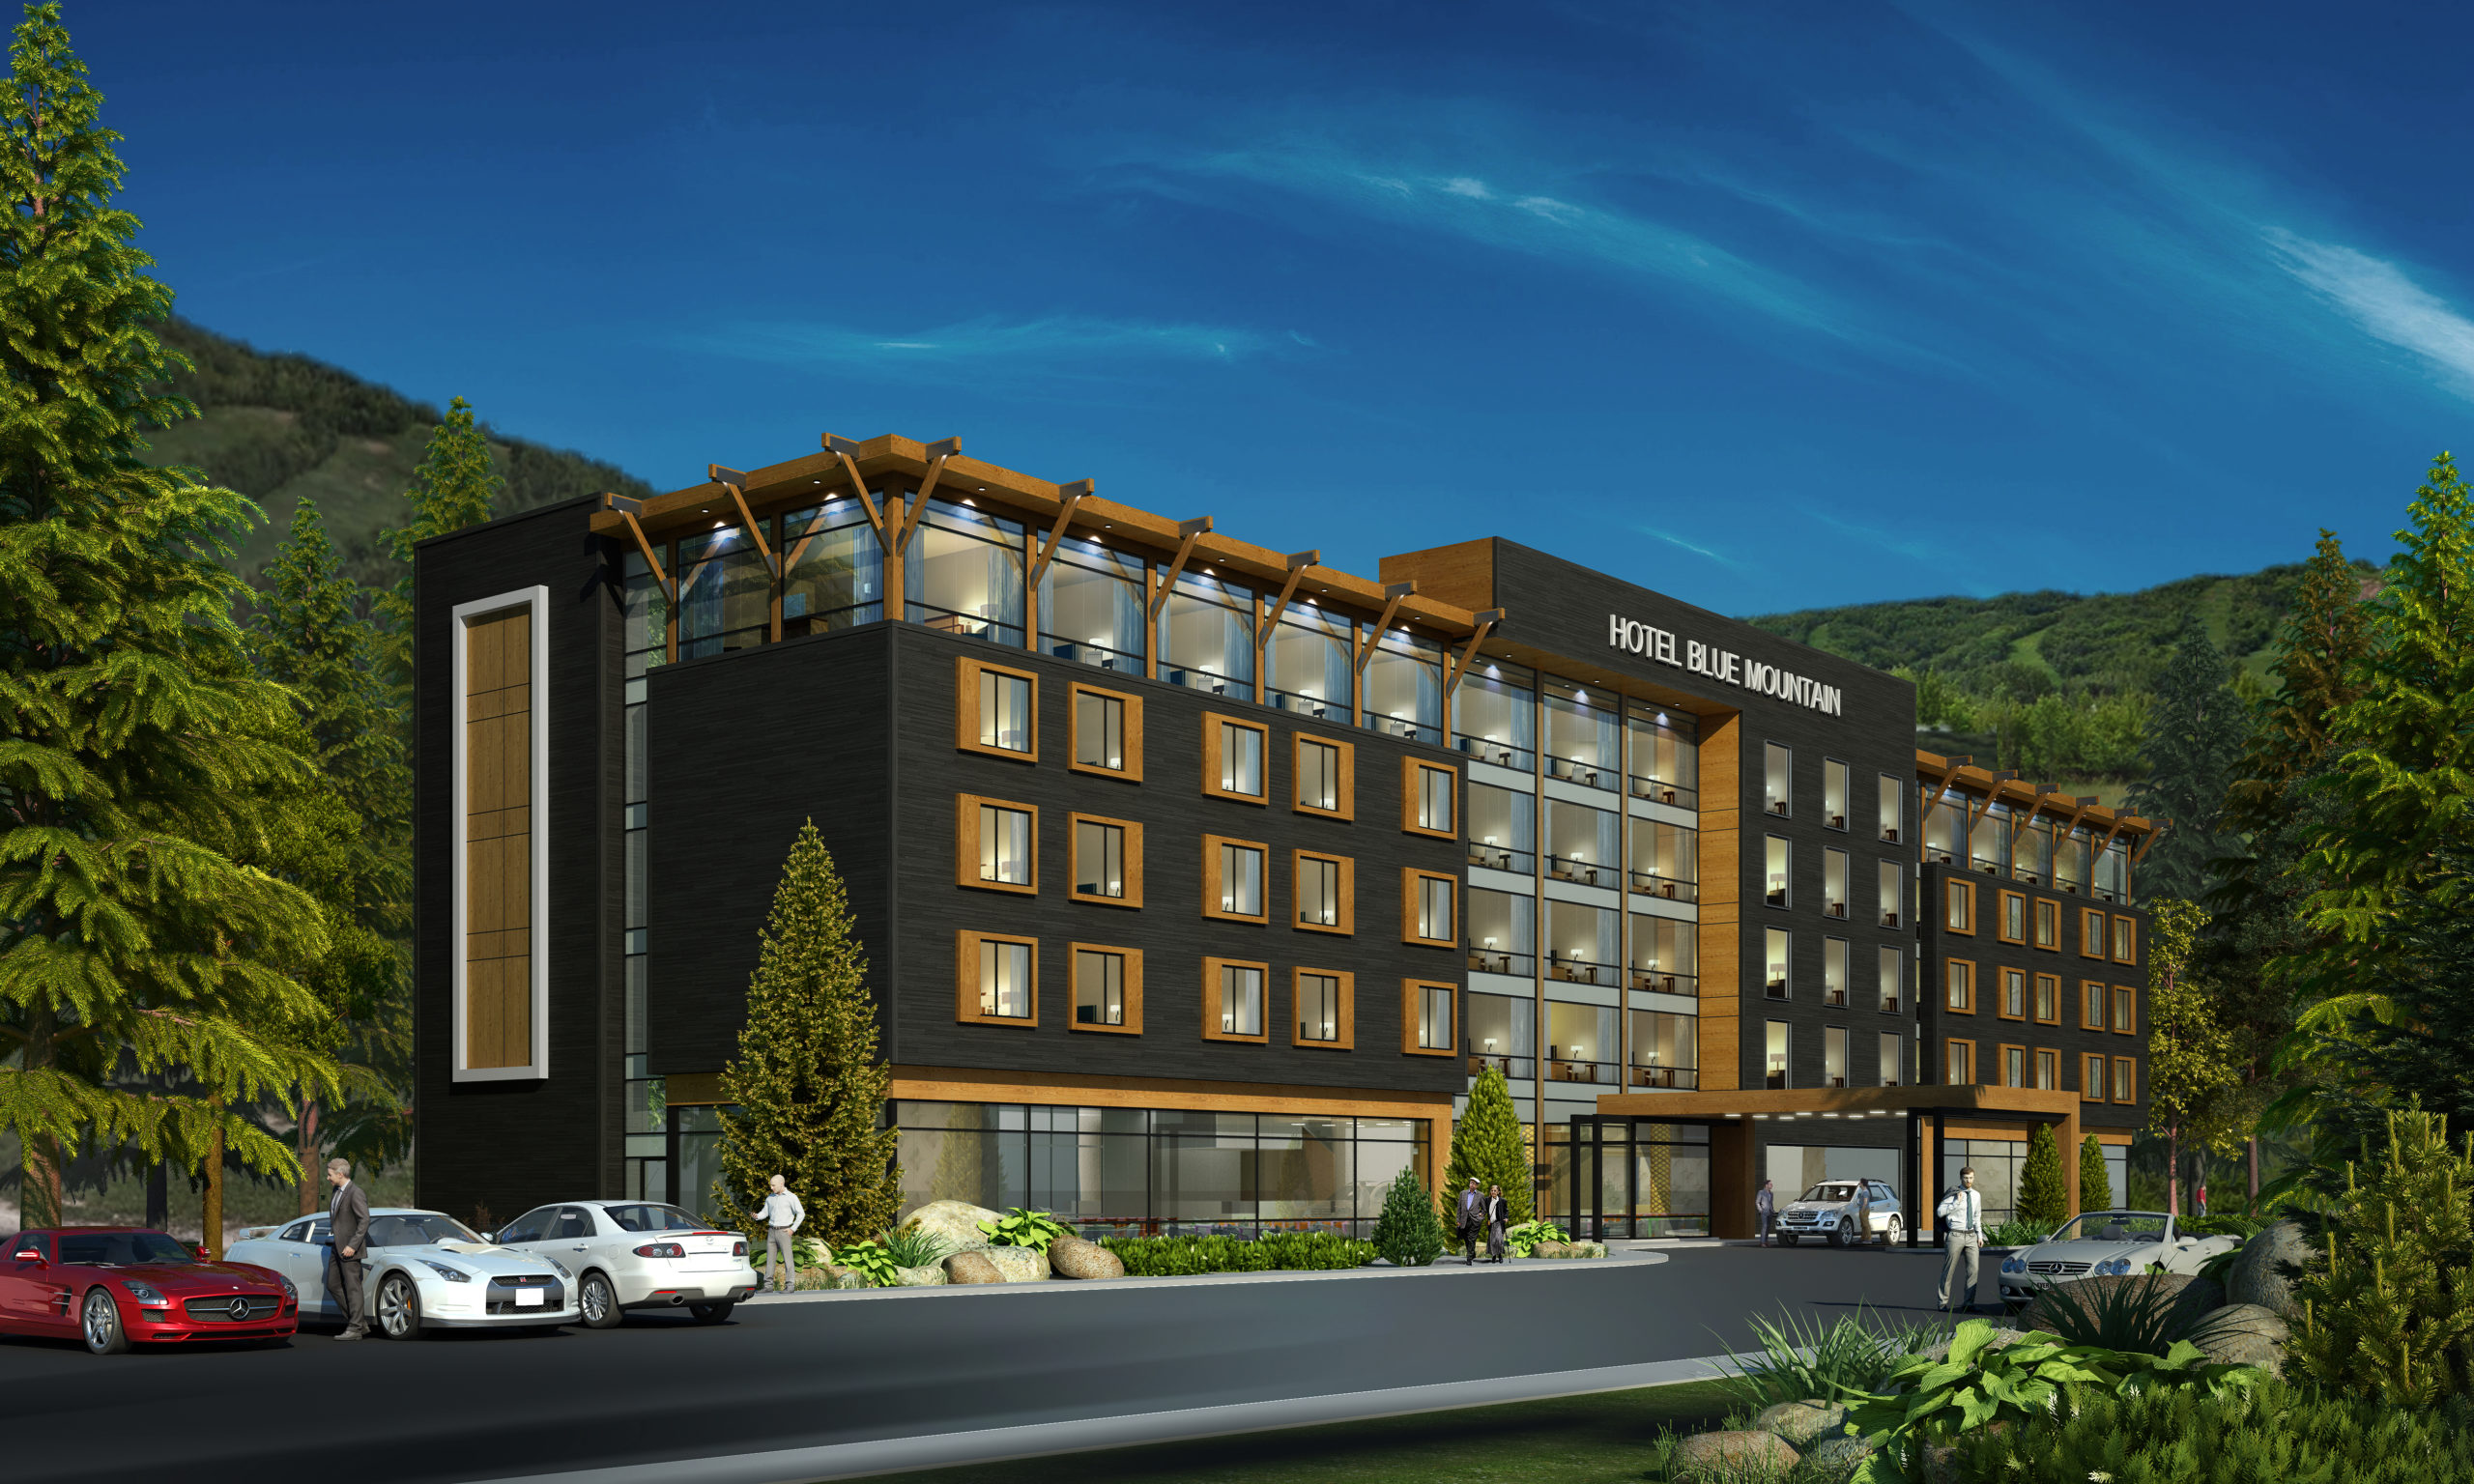 Blue Mountain Hotel and Condo Development